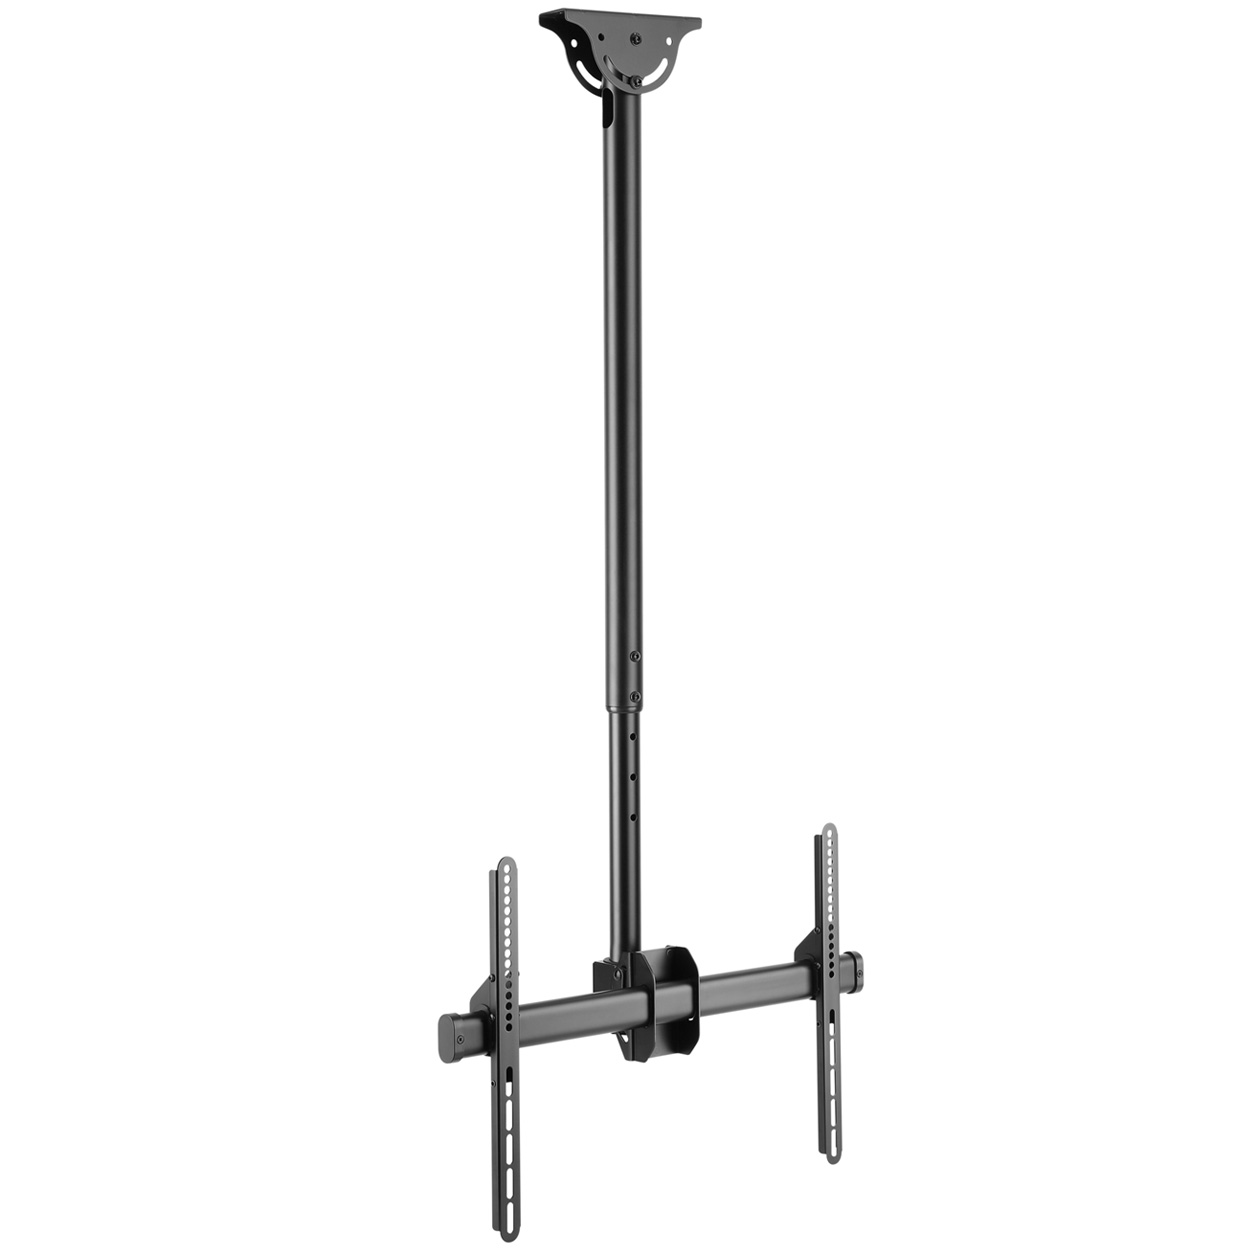 Ceiling Mount TV Bracket with Tilt / Swivel and Adjustable Height for 37-70 inch Screens